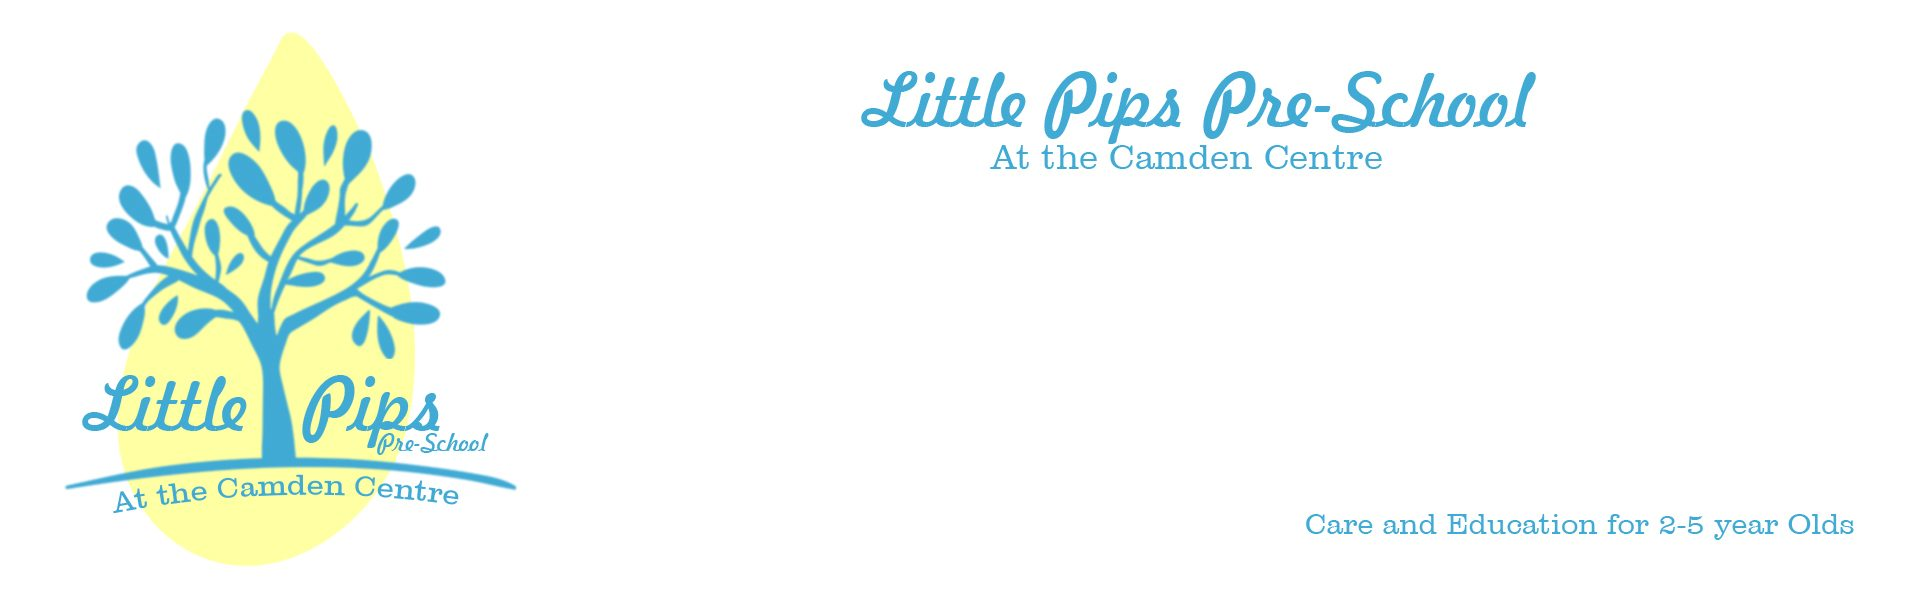 Little Pips Pre-School at The Camden Centre